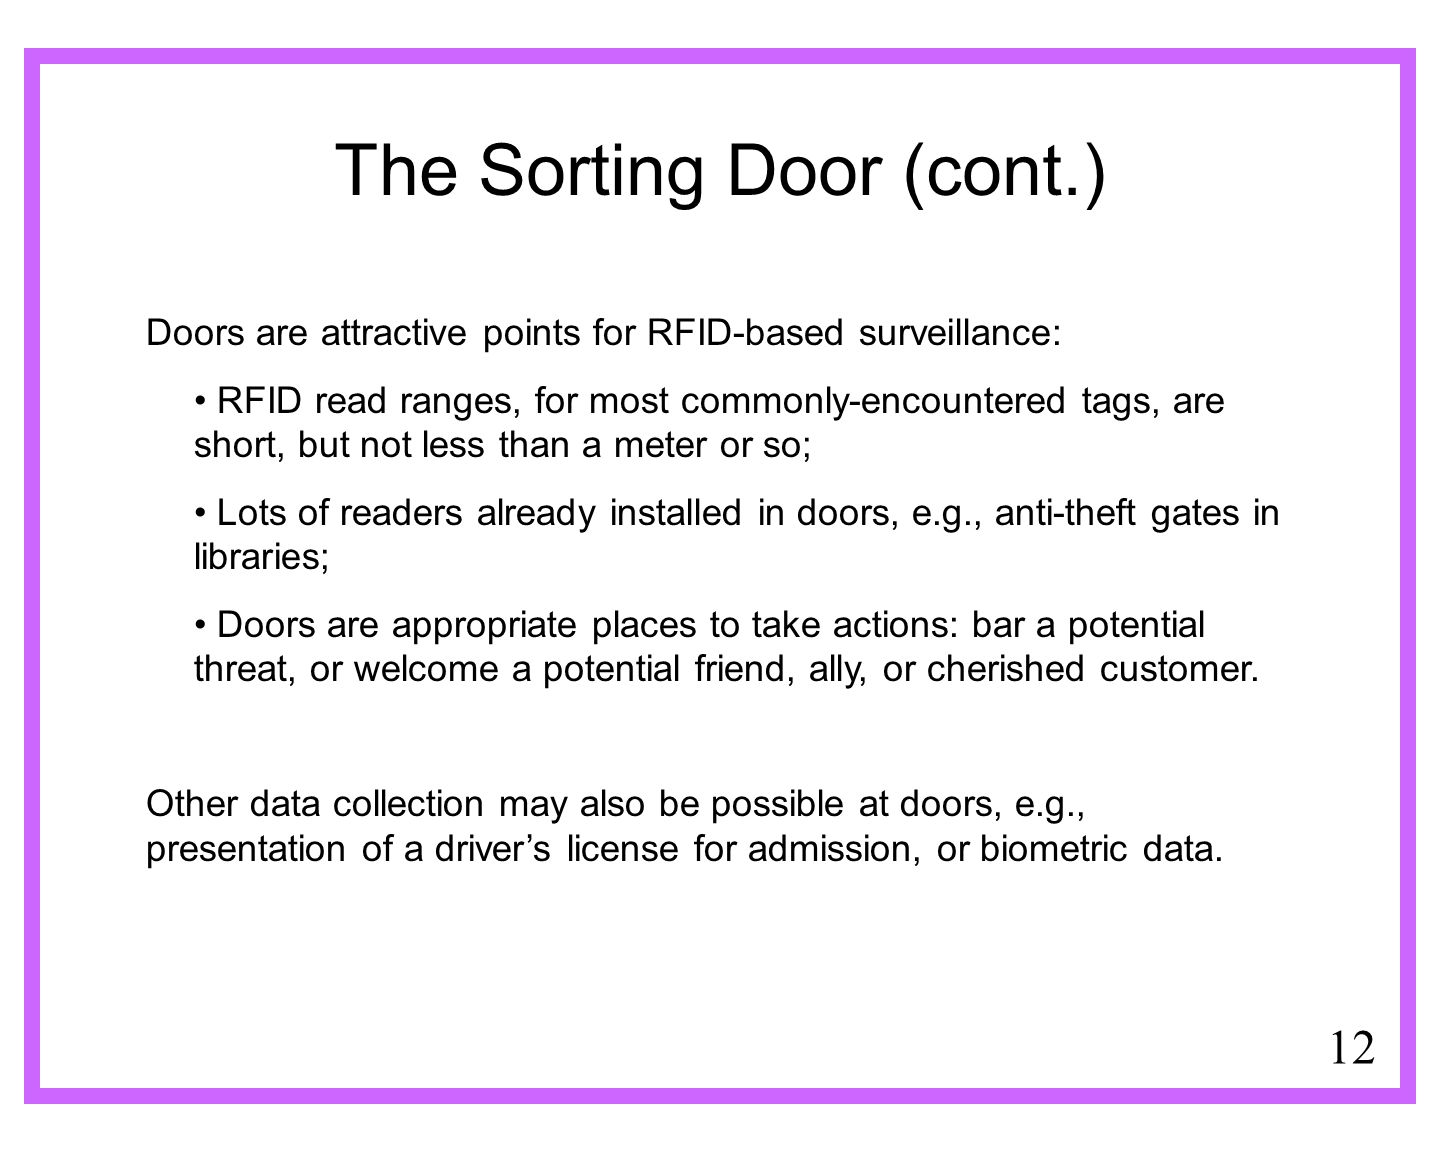 12 The Sorting Door (cont.) Doors are attractive points for RFID-based surveillance: RFID read ranges, for most commonly-encountered tags, are short, but not less than a meter or so; Lots of readers already installed in doors, e.g., anti-theft gates in libraries; Doors are appropriate places to take actions: bar a potential threat, or welcome a potential friend, ally, or cherished customer.